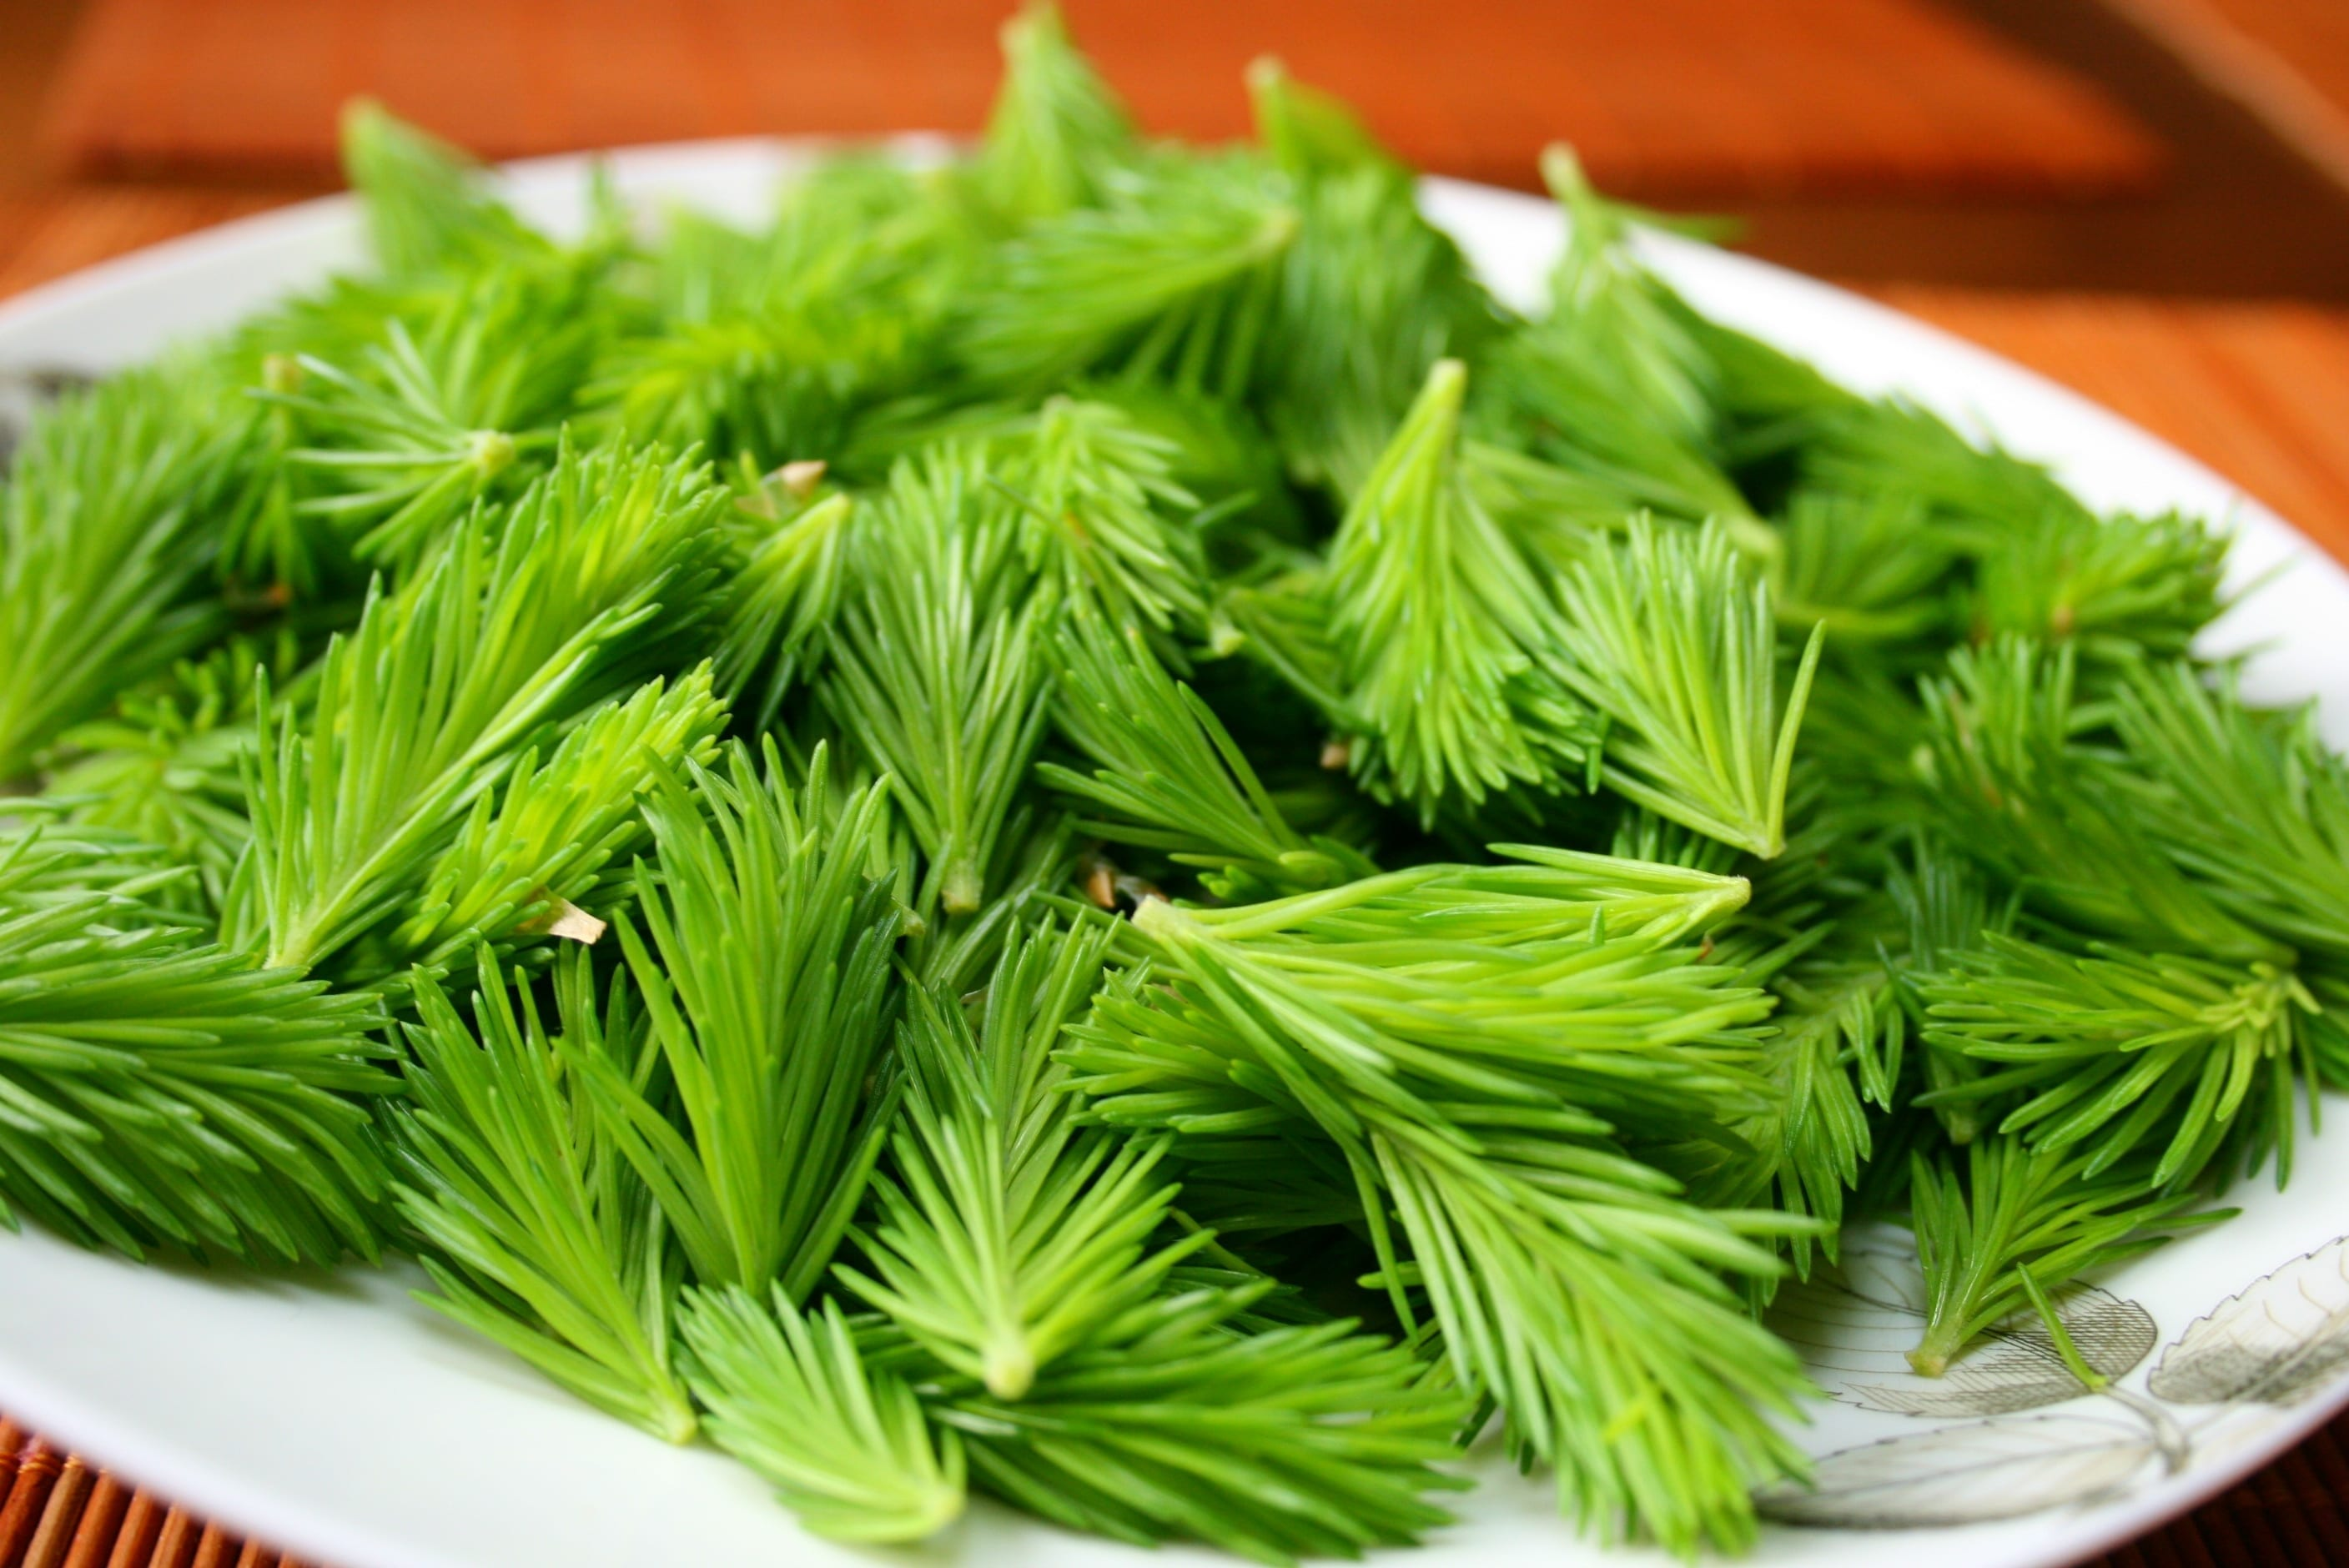 Spruce tips, fir shoots